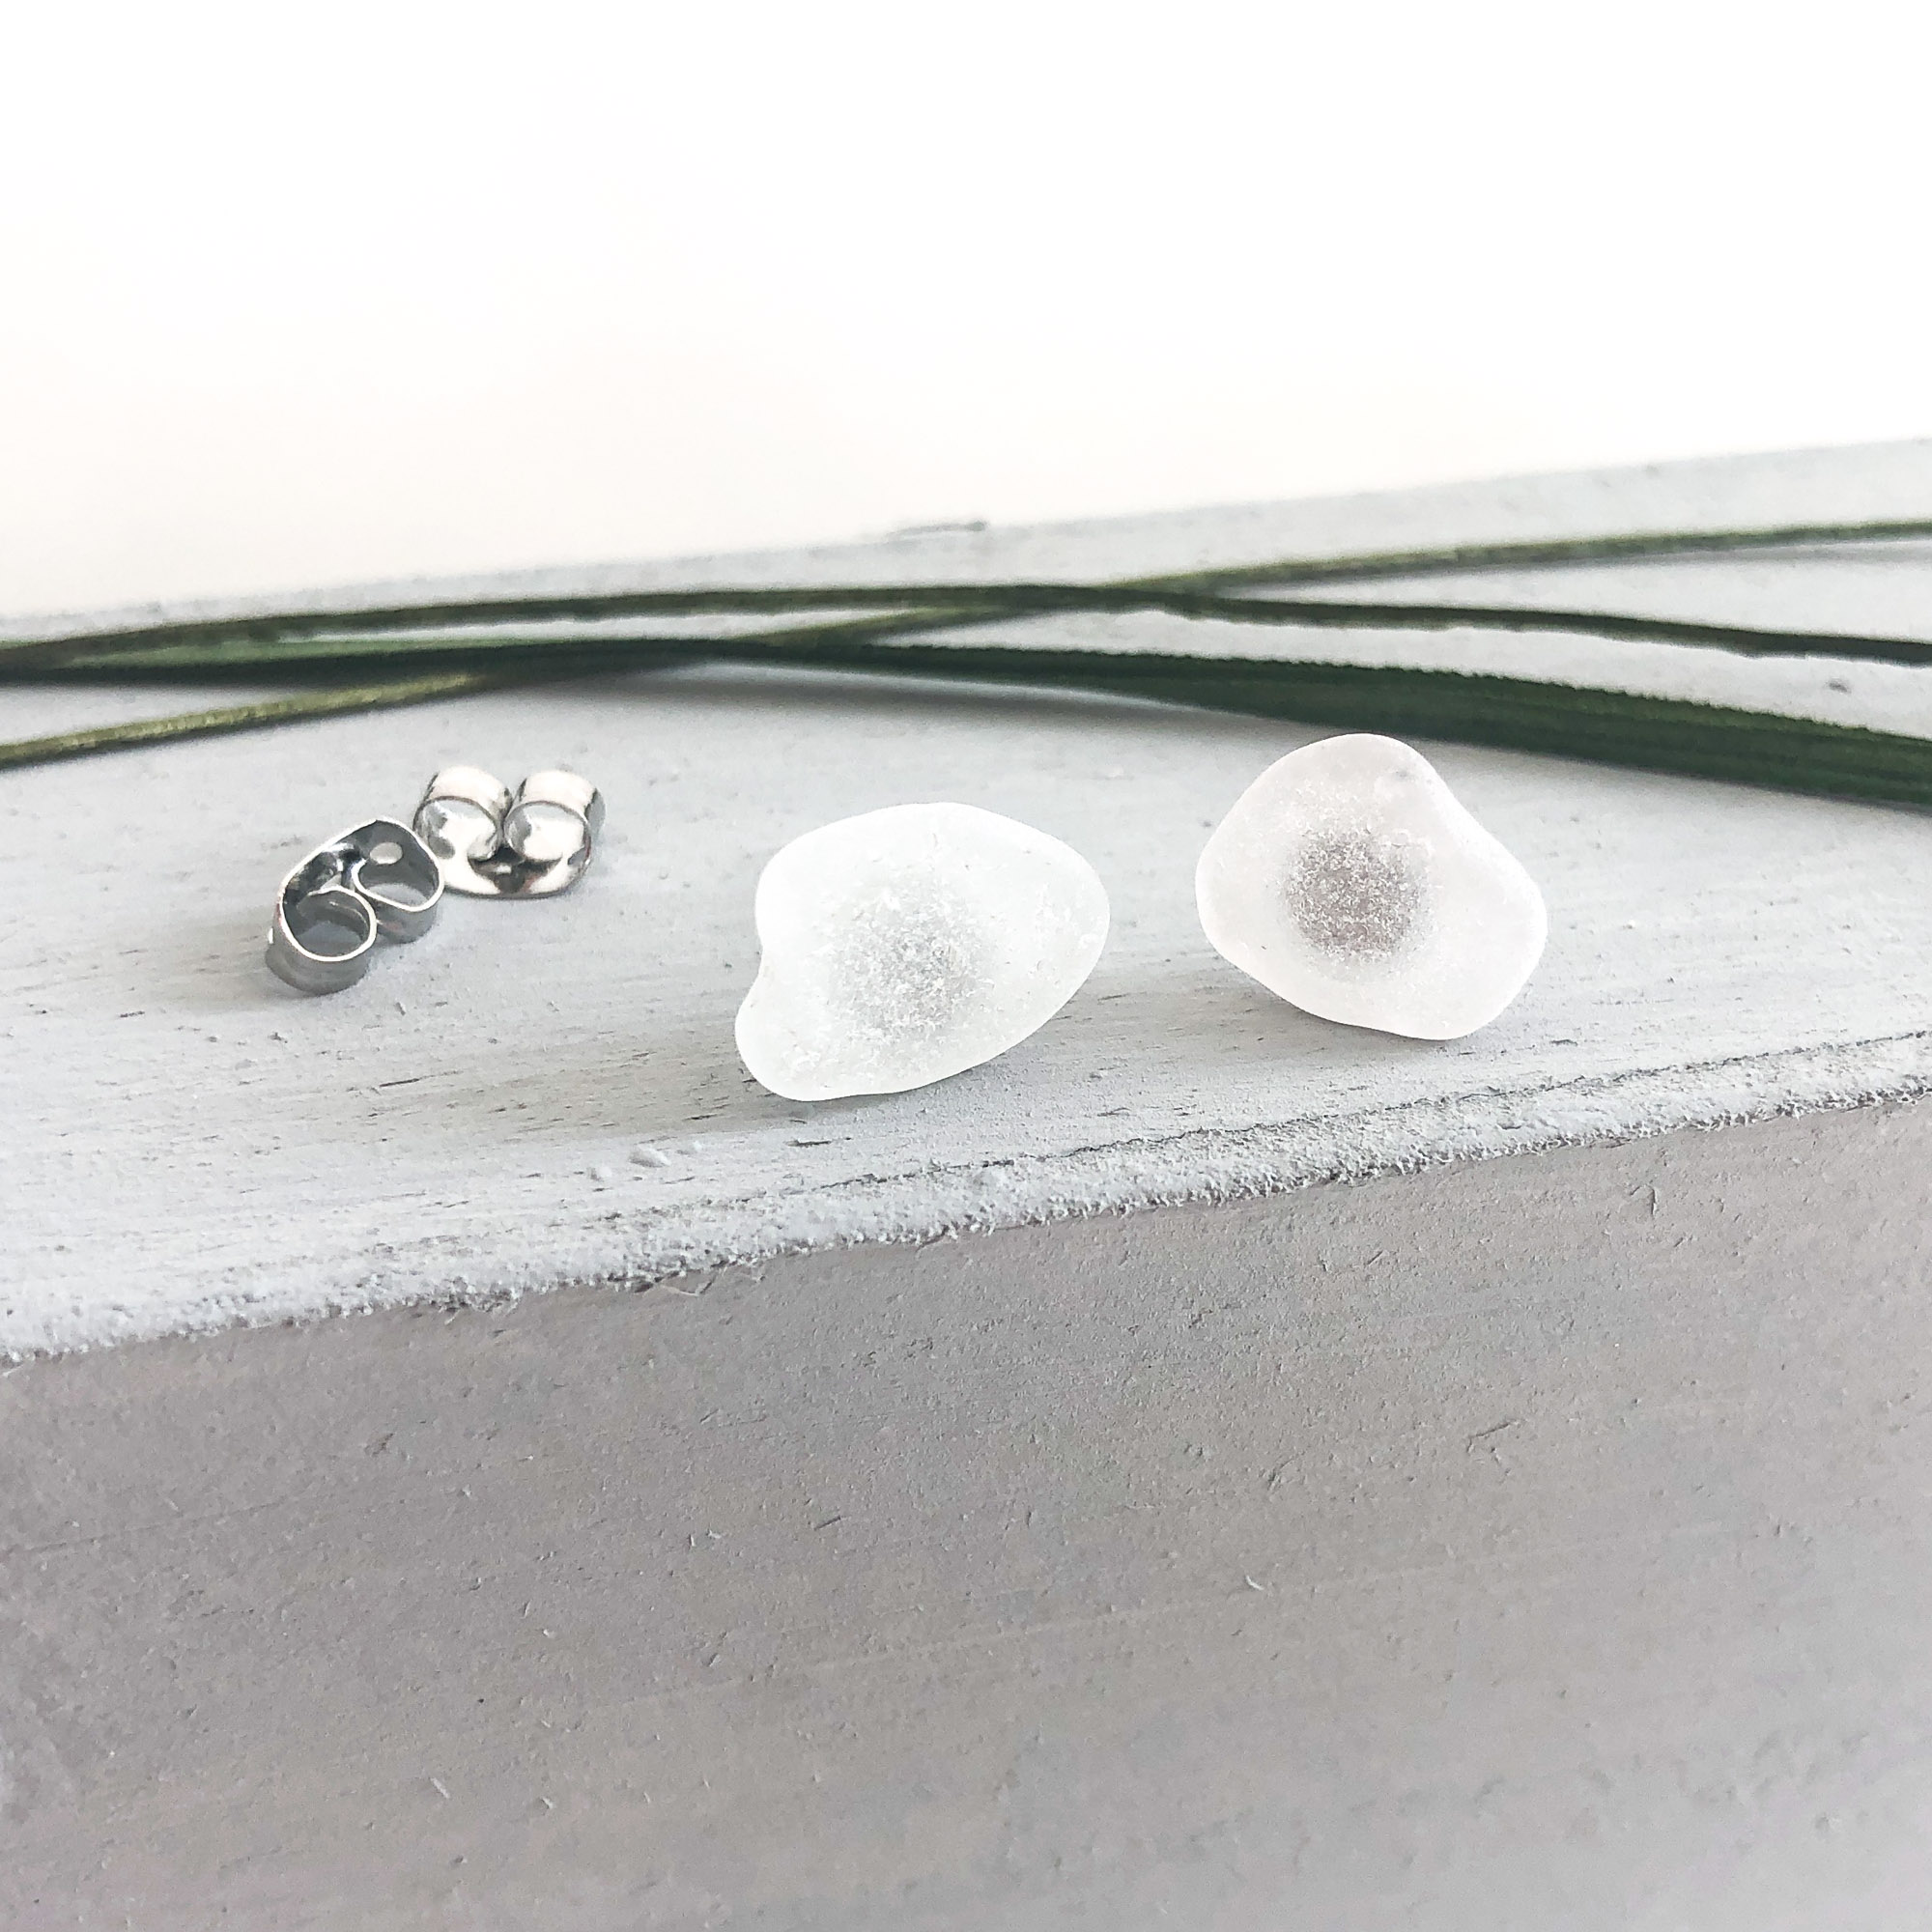 white sea glass studs - • genuine sea glass jewellery from France• handcollected• stainless steel posts• SGES715 Euro